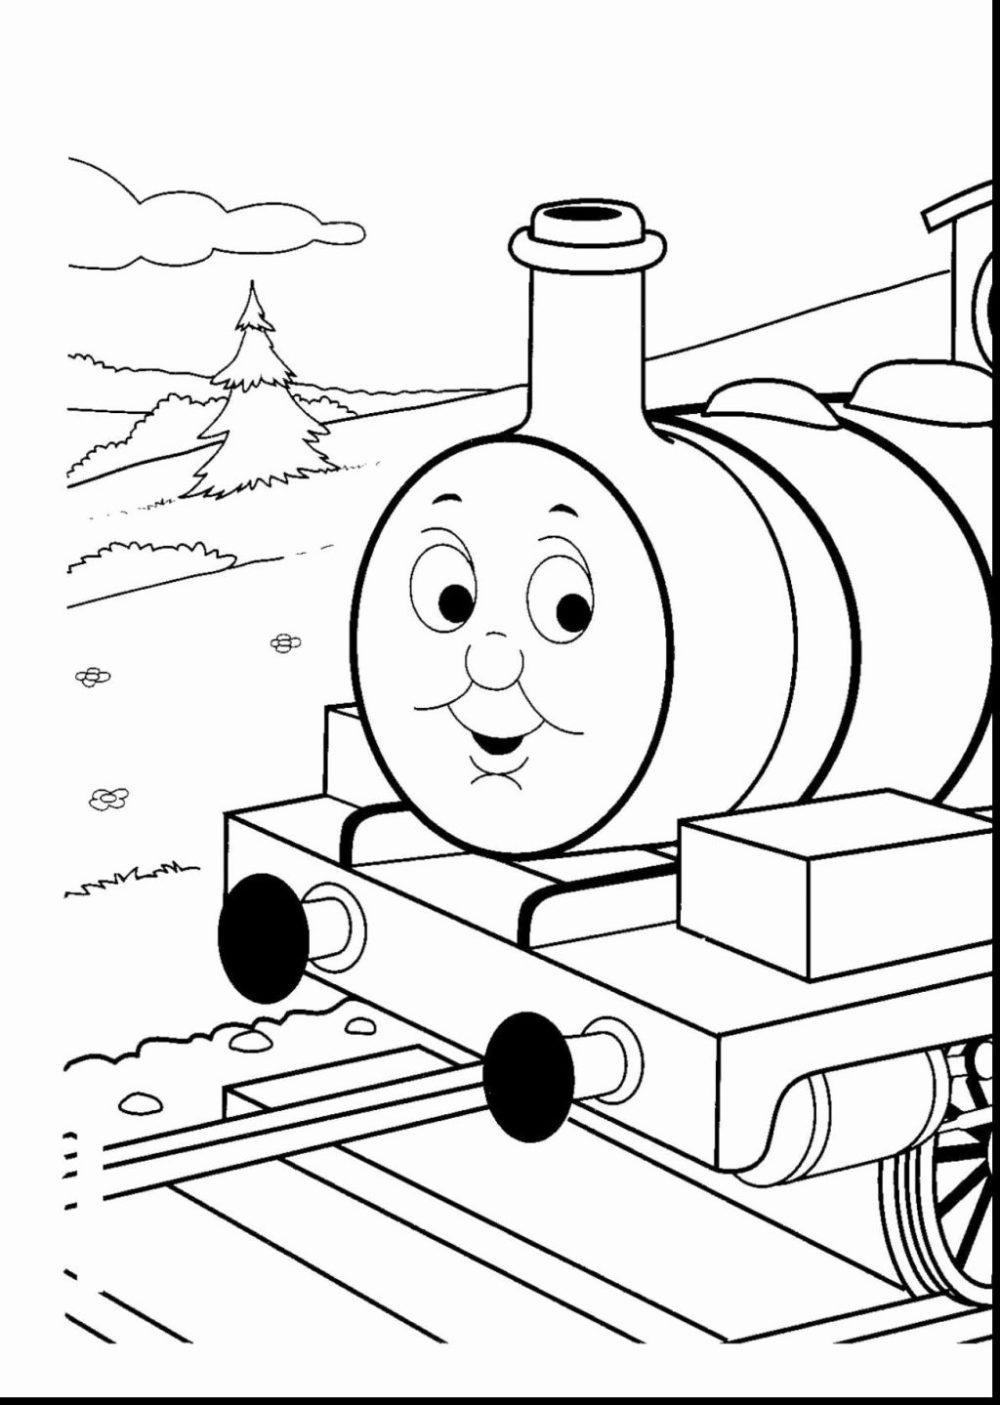 medium resolution of 1024x1439 coloring pages colorings trains unique cool free train awesome thomas drawing